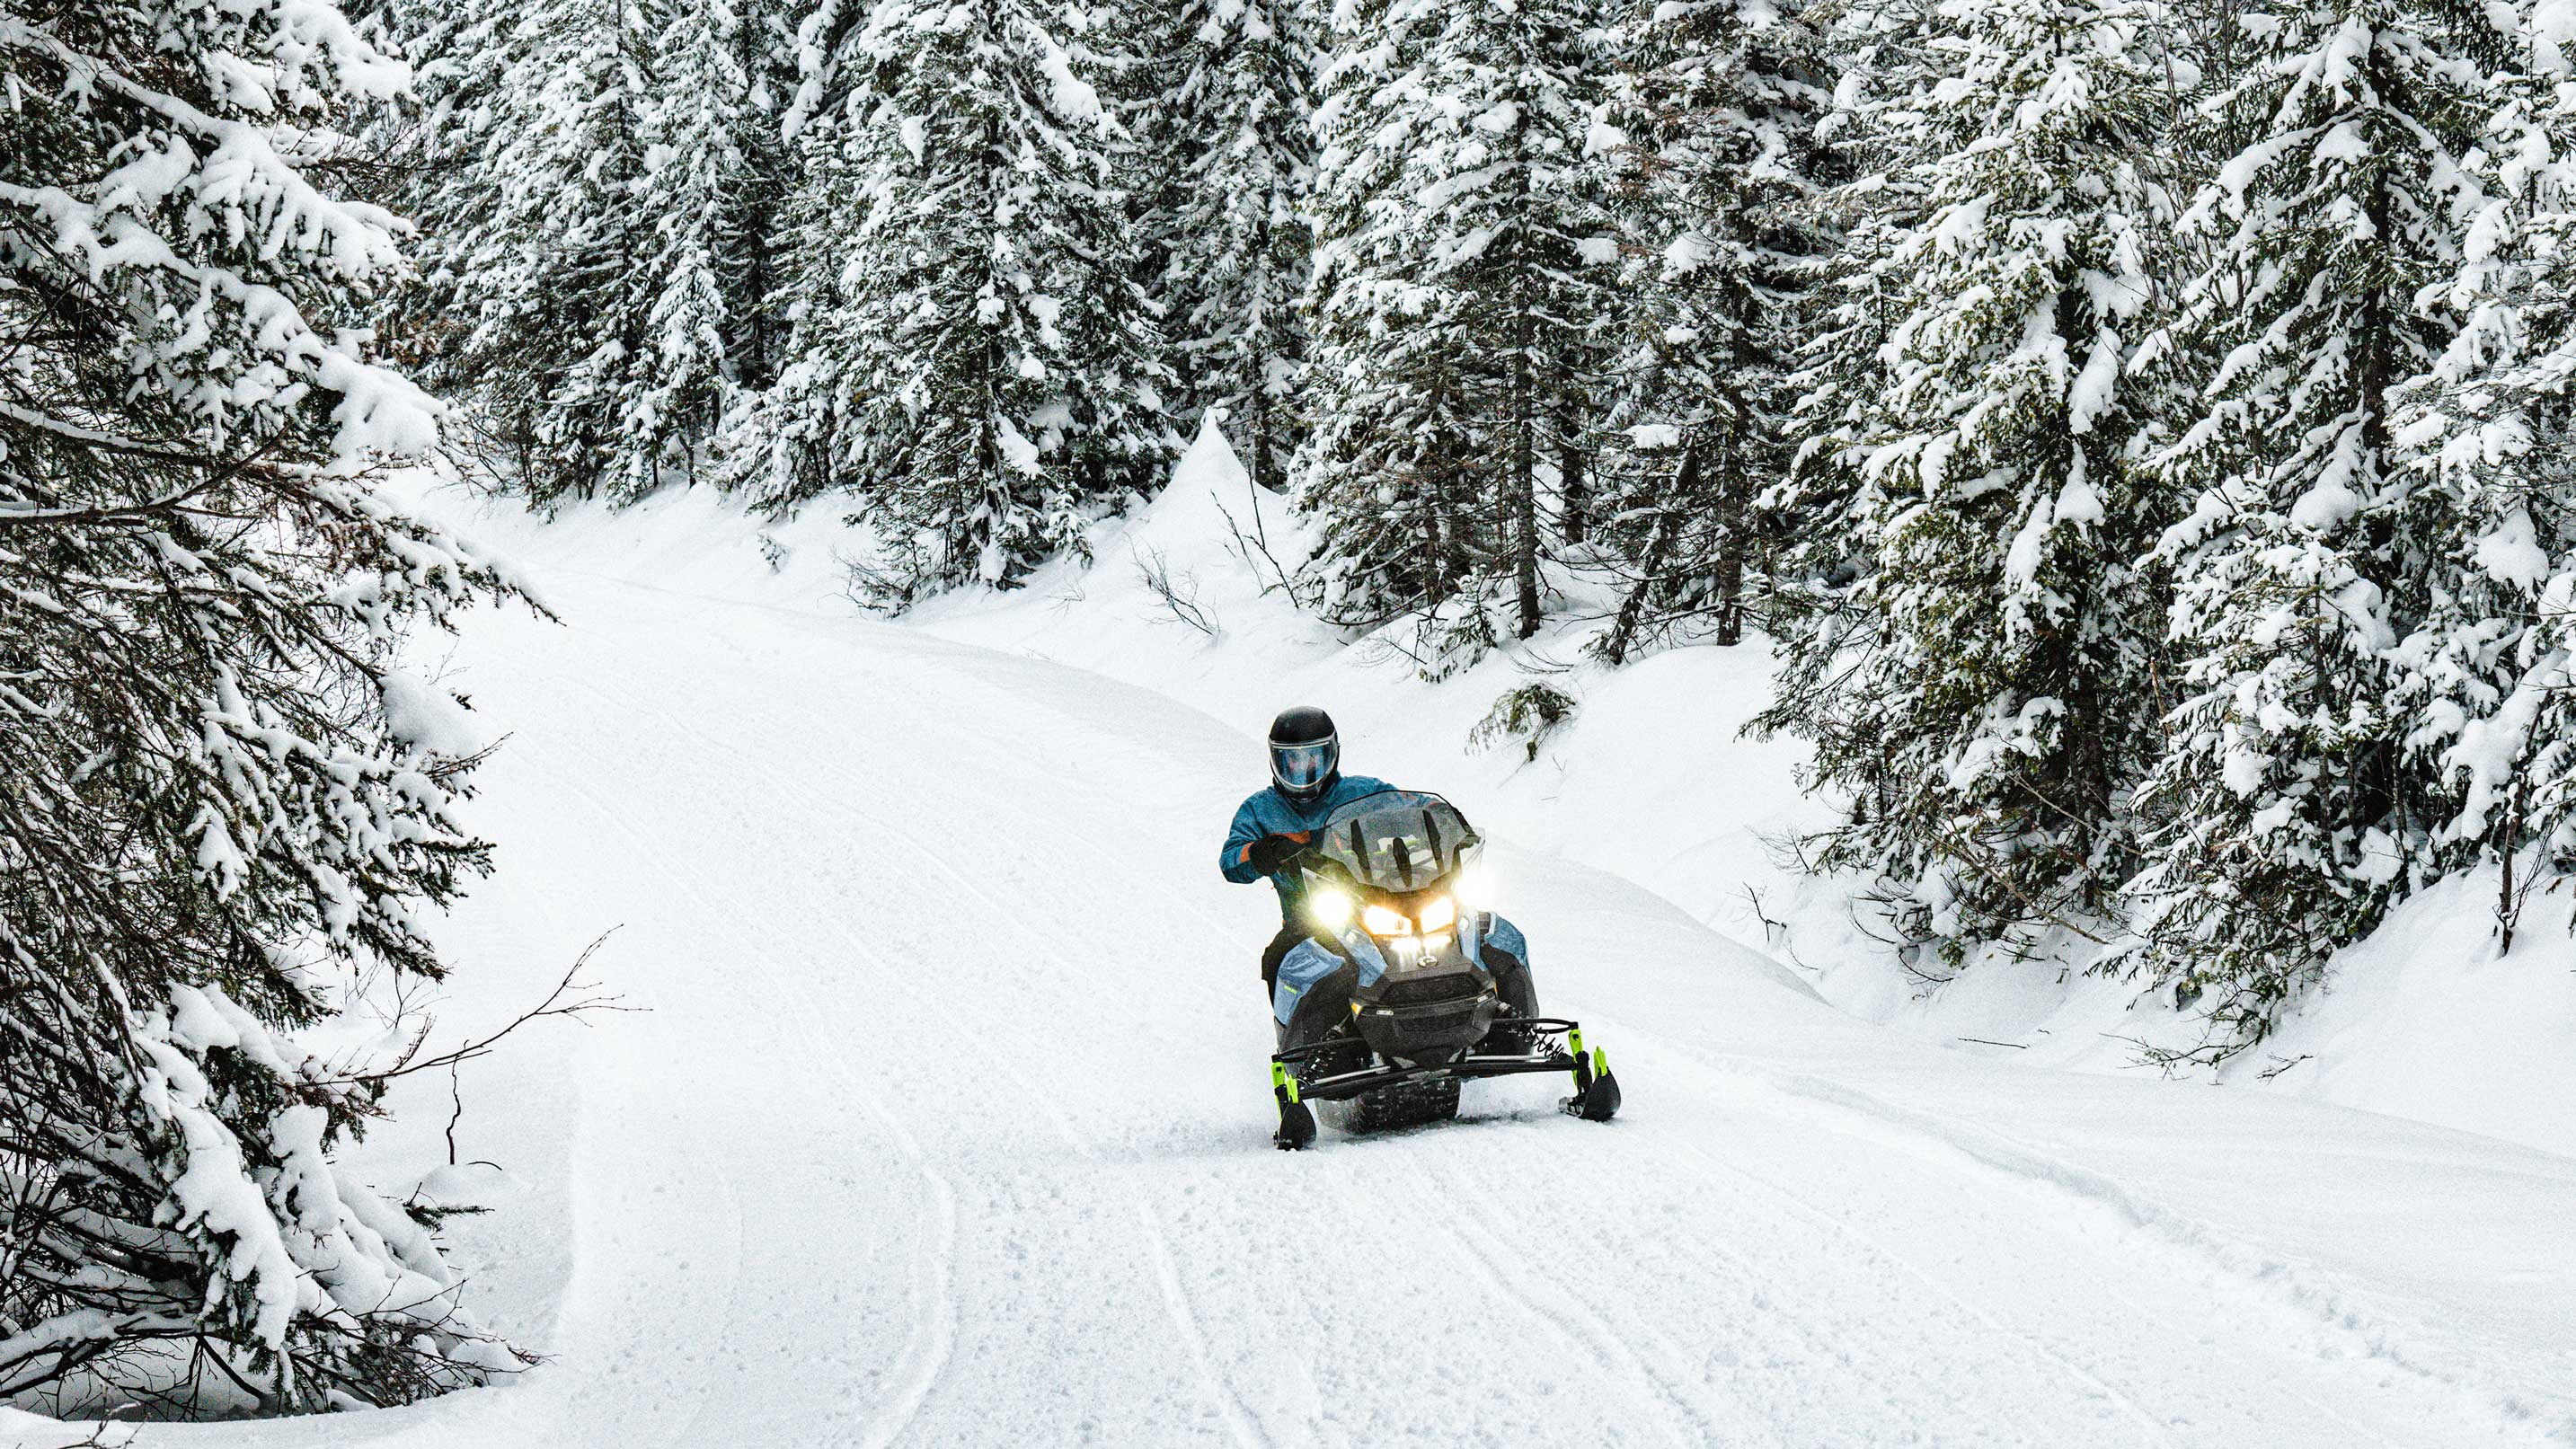 Man riding a 2022 Ski-Doo Renegade on a trail